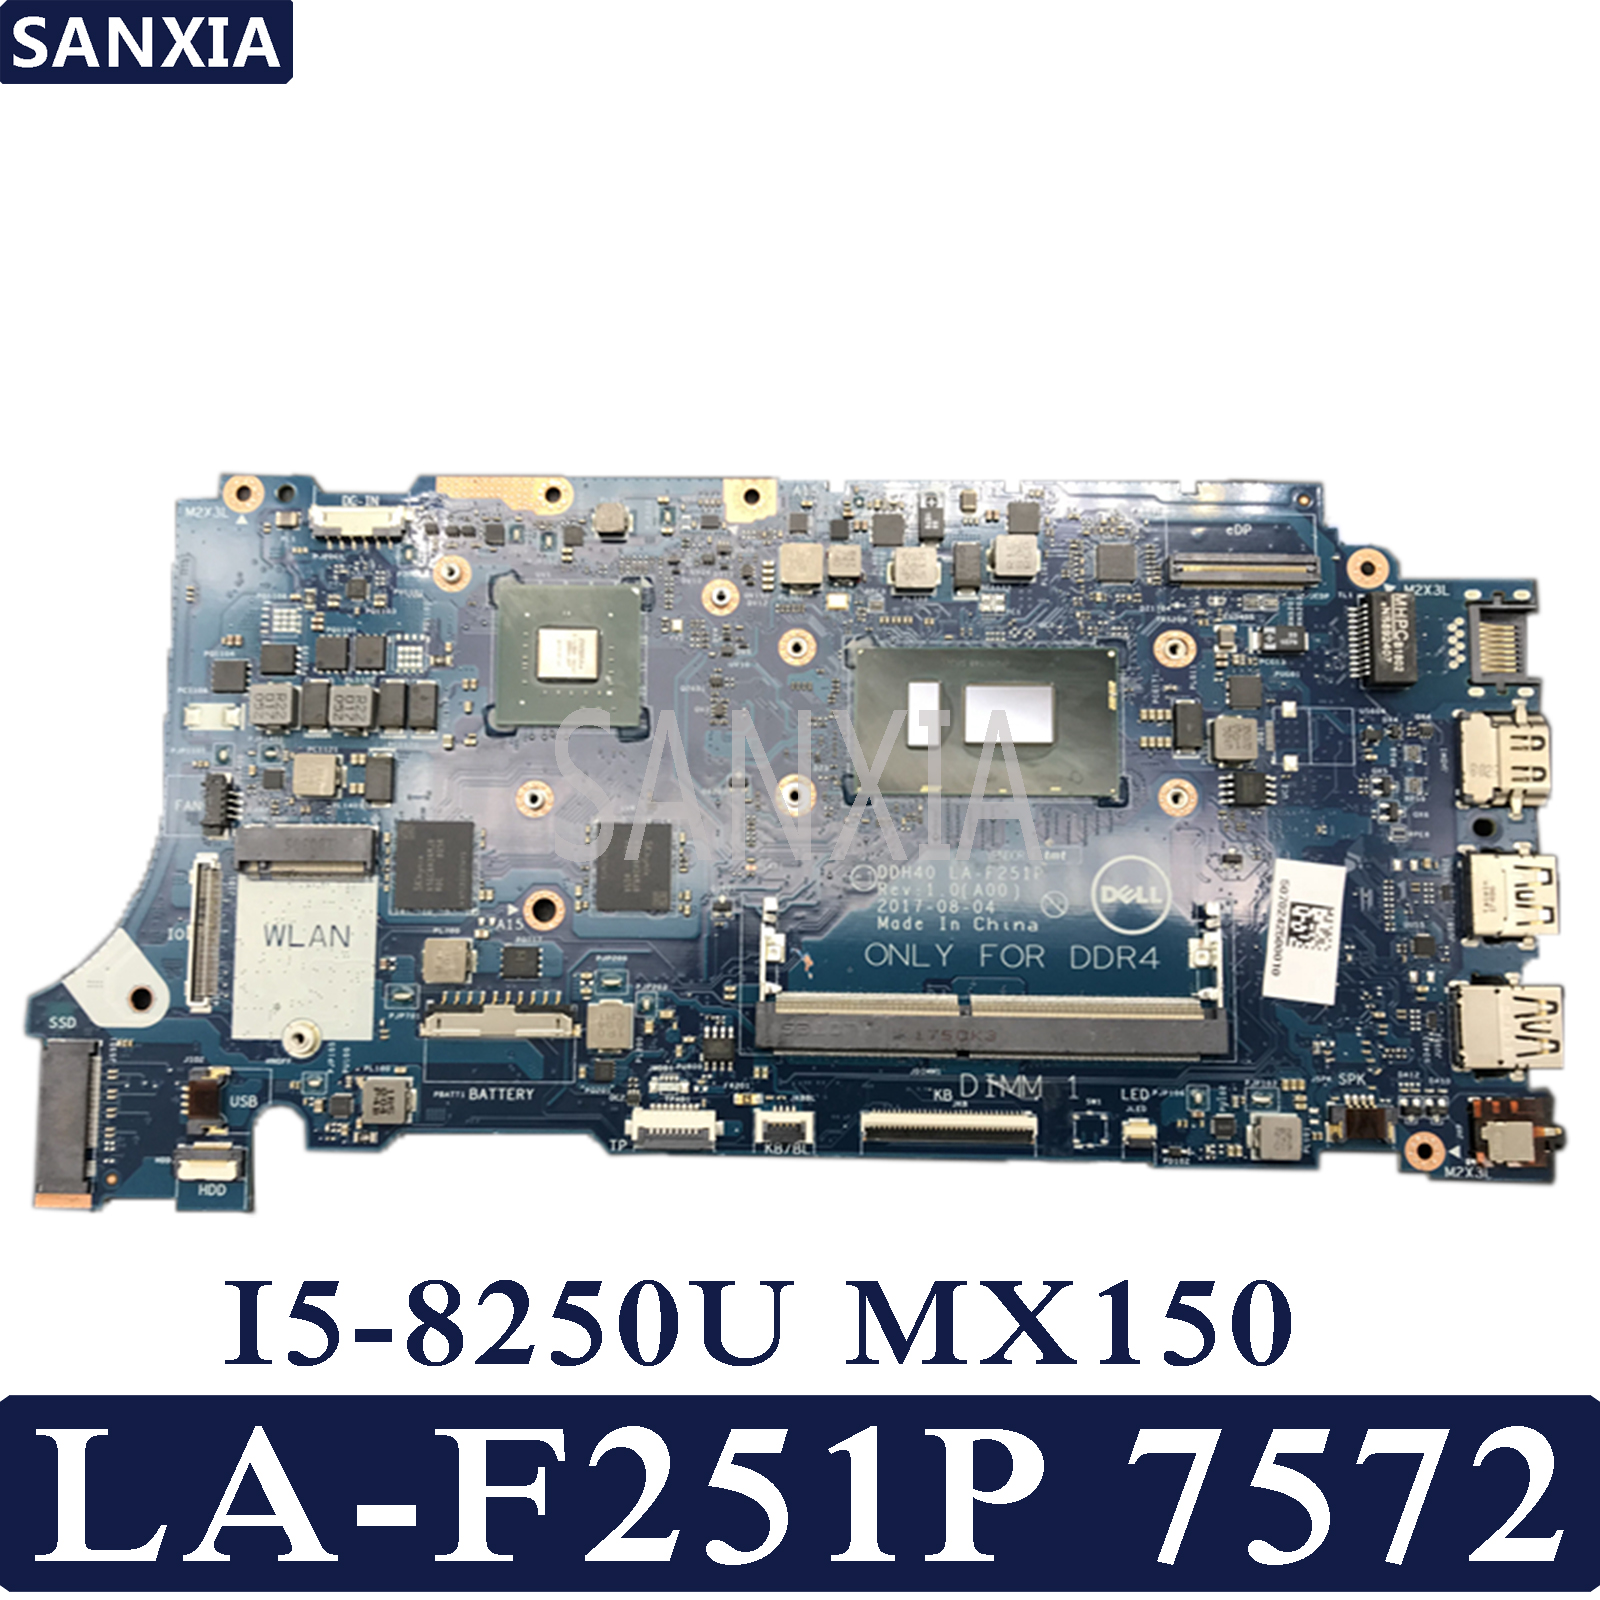 KEFU DDH40 LA-F251P <font><b>Laptop</b></font> motherboard for Dell Inspiron 7572 7472 Test original mainboard I5-8250U <font><b>MX150</b></font> image